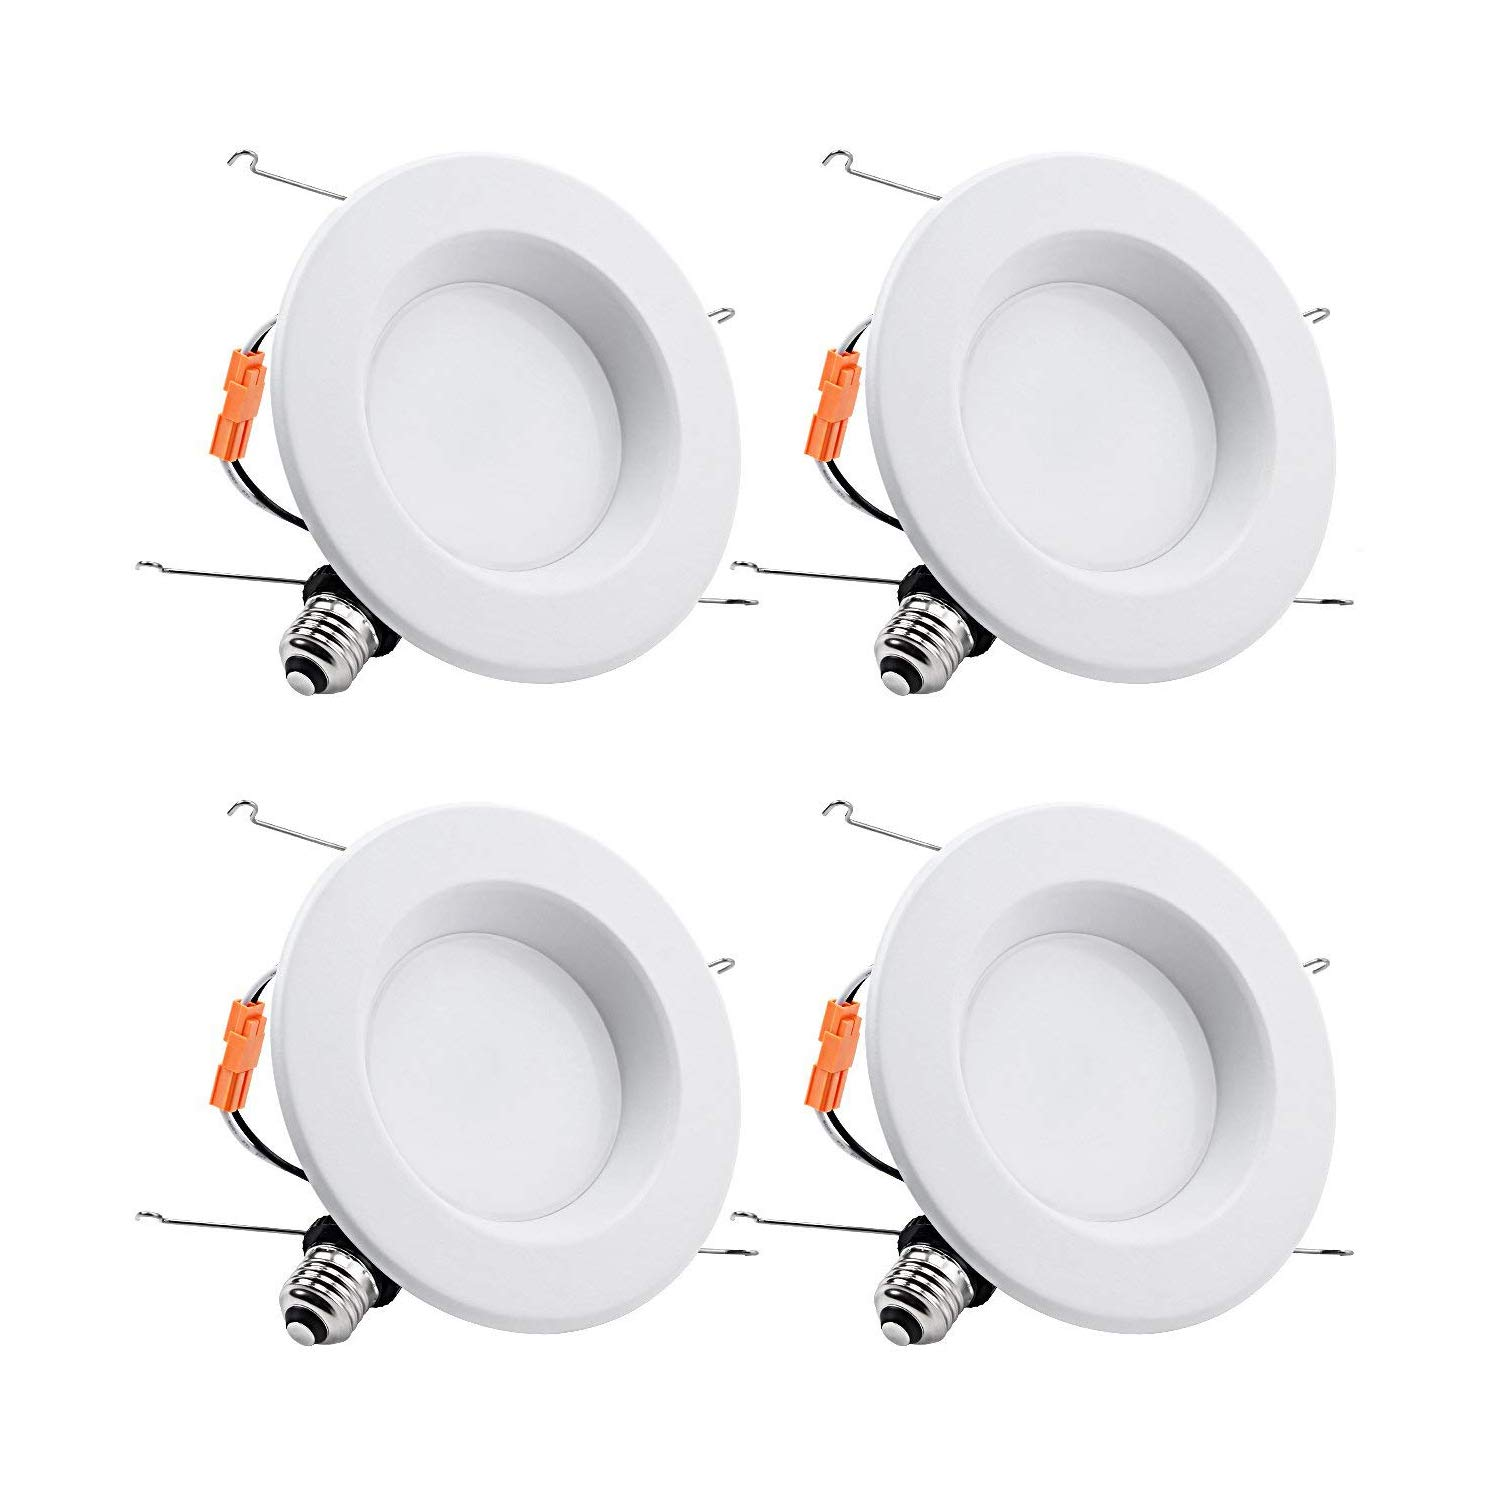 TORCHSTAR 5-6 Inch Dimmable Recessed LED Downlight with Smooth Trim, 15W (90W Eqv.), CRI 90, UL/Energy Star, 5000K Daylight, 1112lm, Retrofit Lighting, 5 Years Warranty, Pack of 4